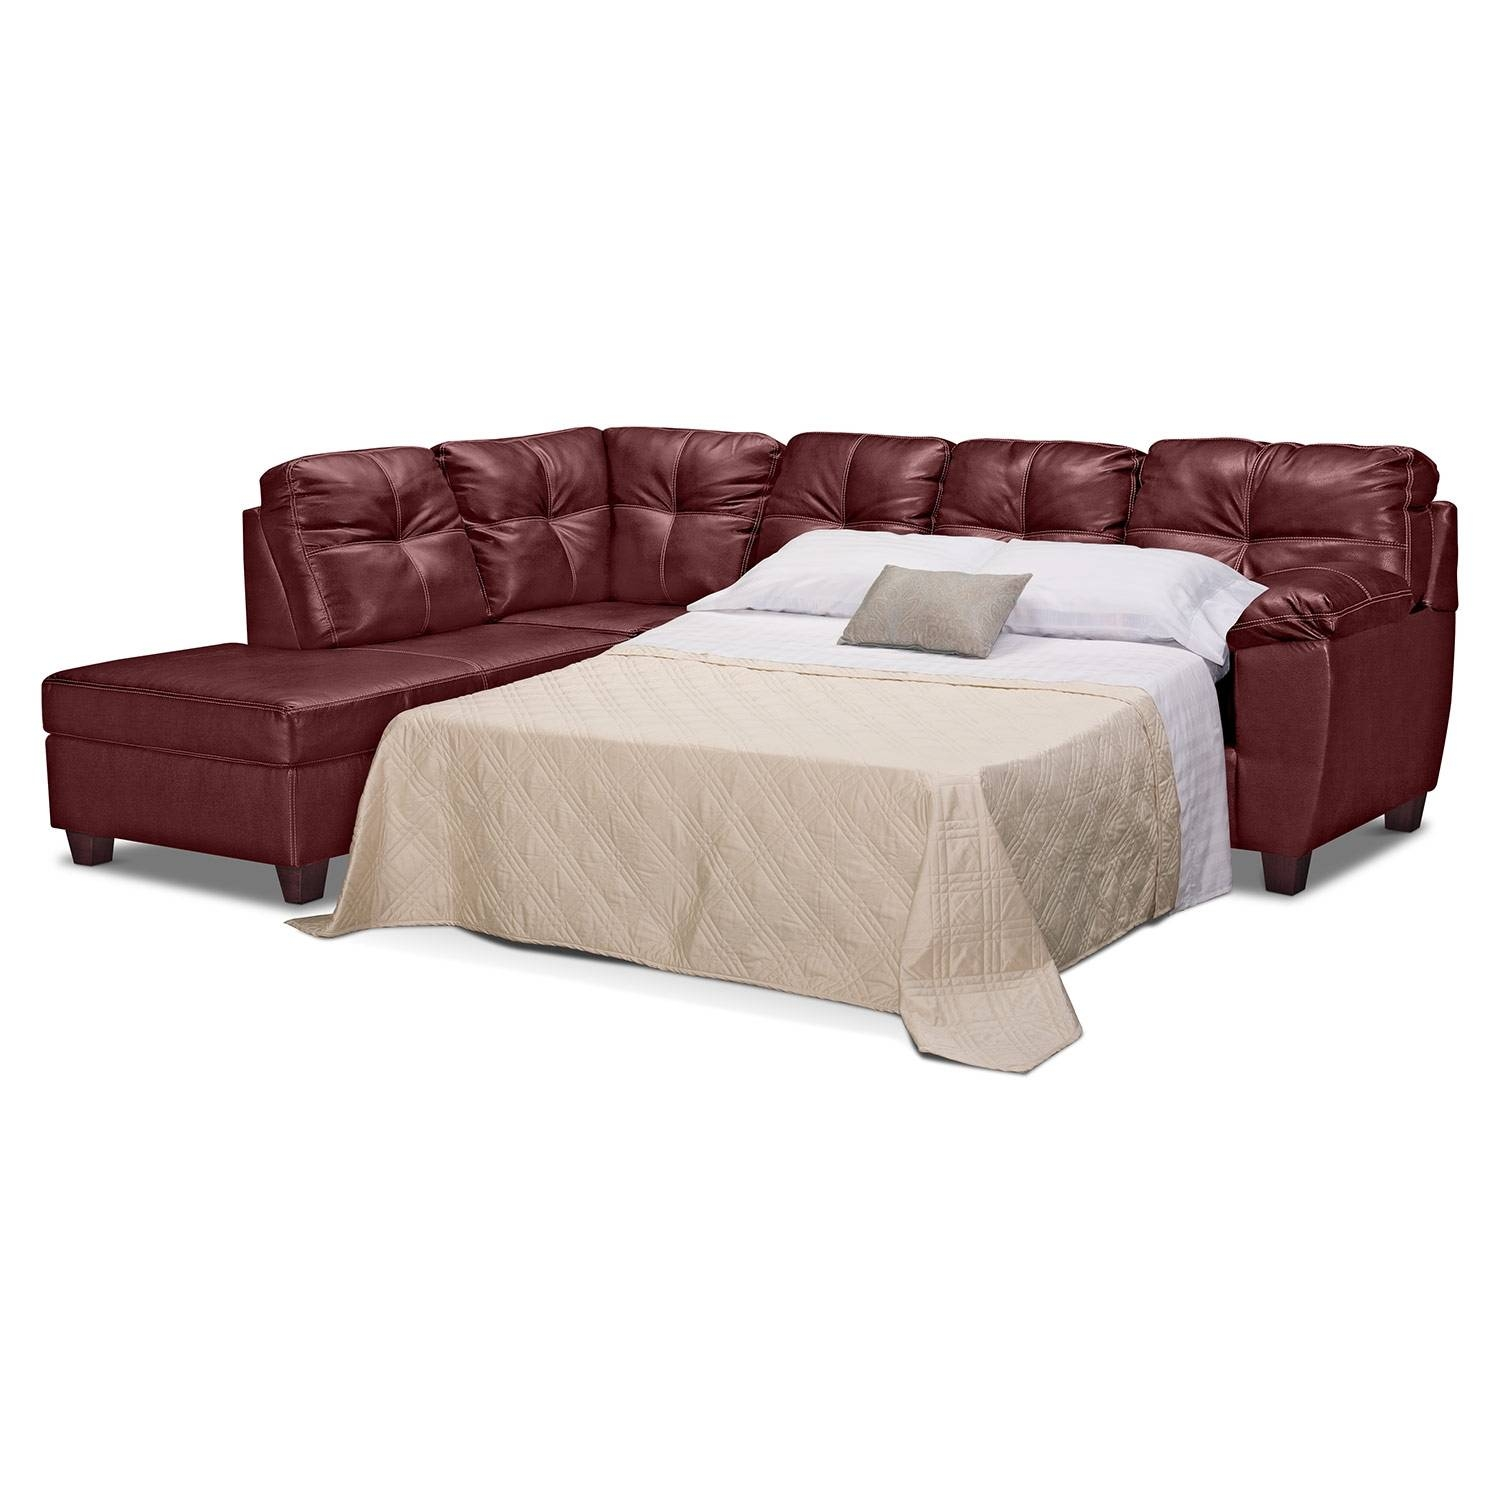 Wonderful Sectional Sofas With Sleeper Bed 52 In 3 Piece Sectional Within 3 Piece Sectional Sleeper Sofa (View 30 of 30)